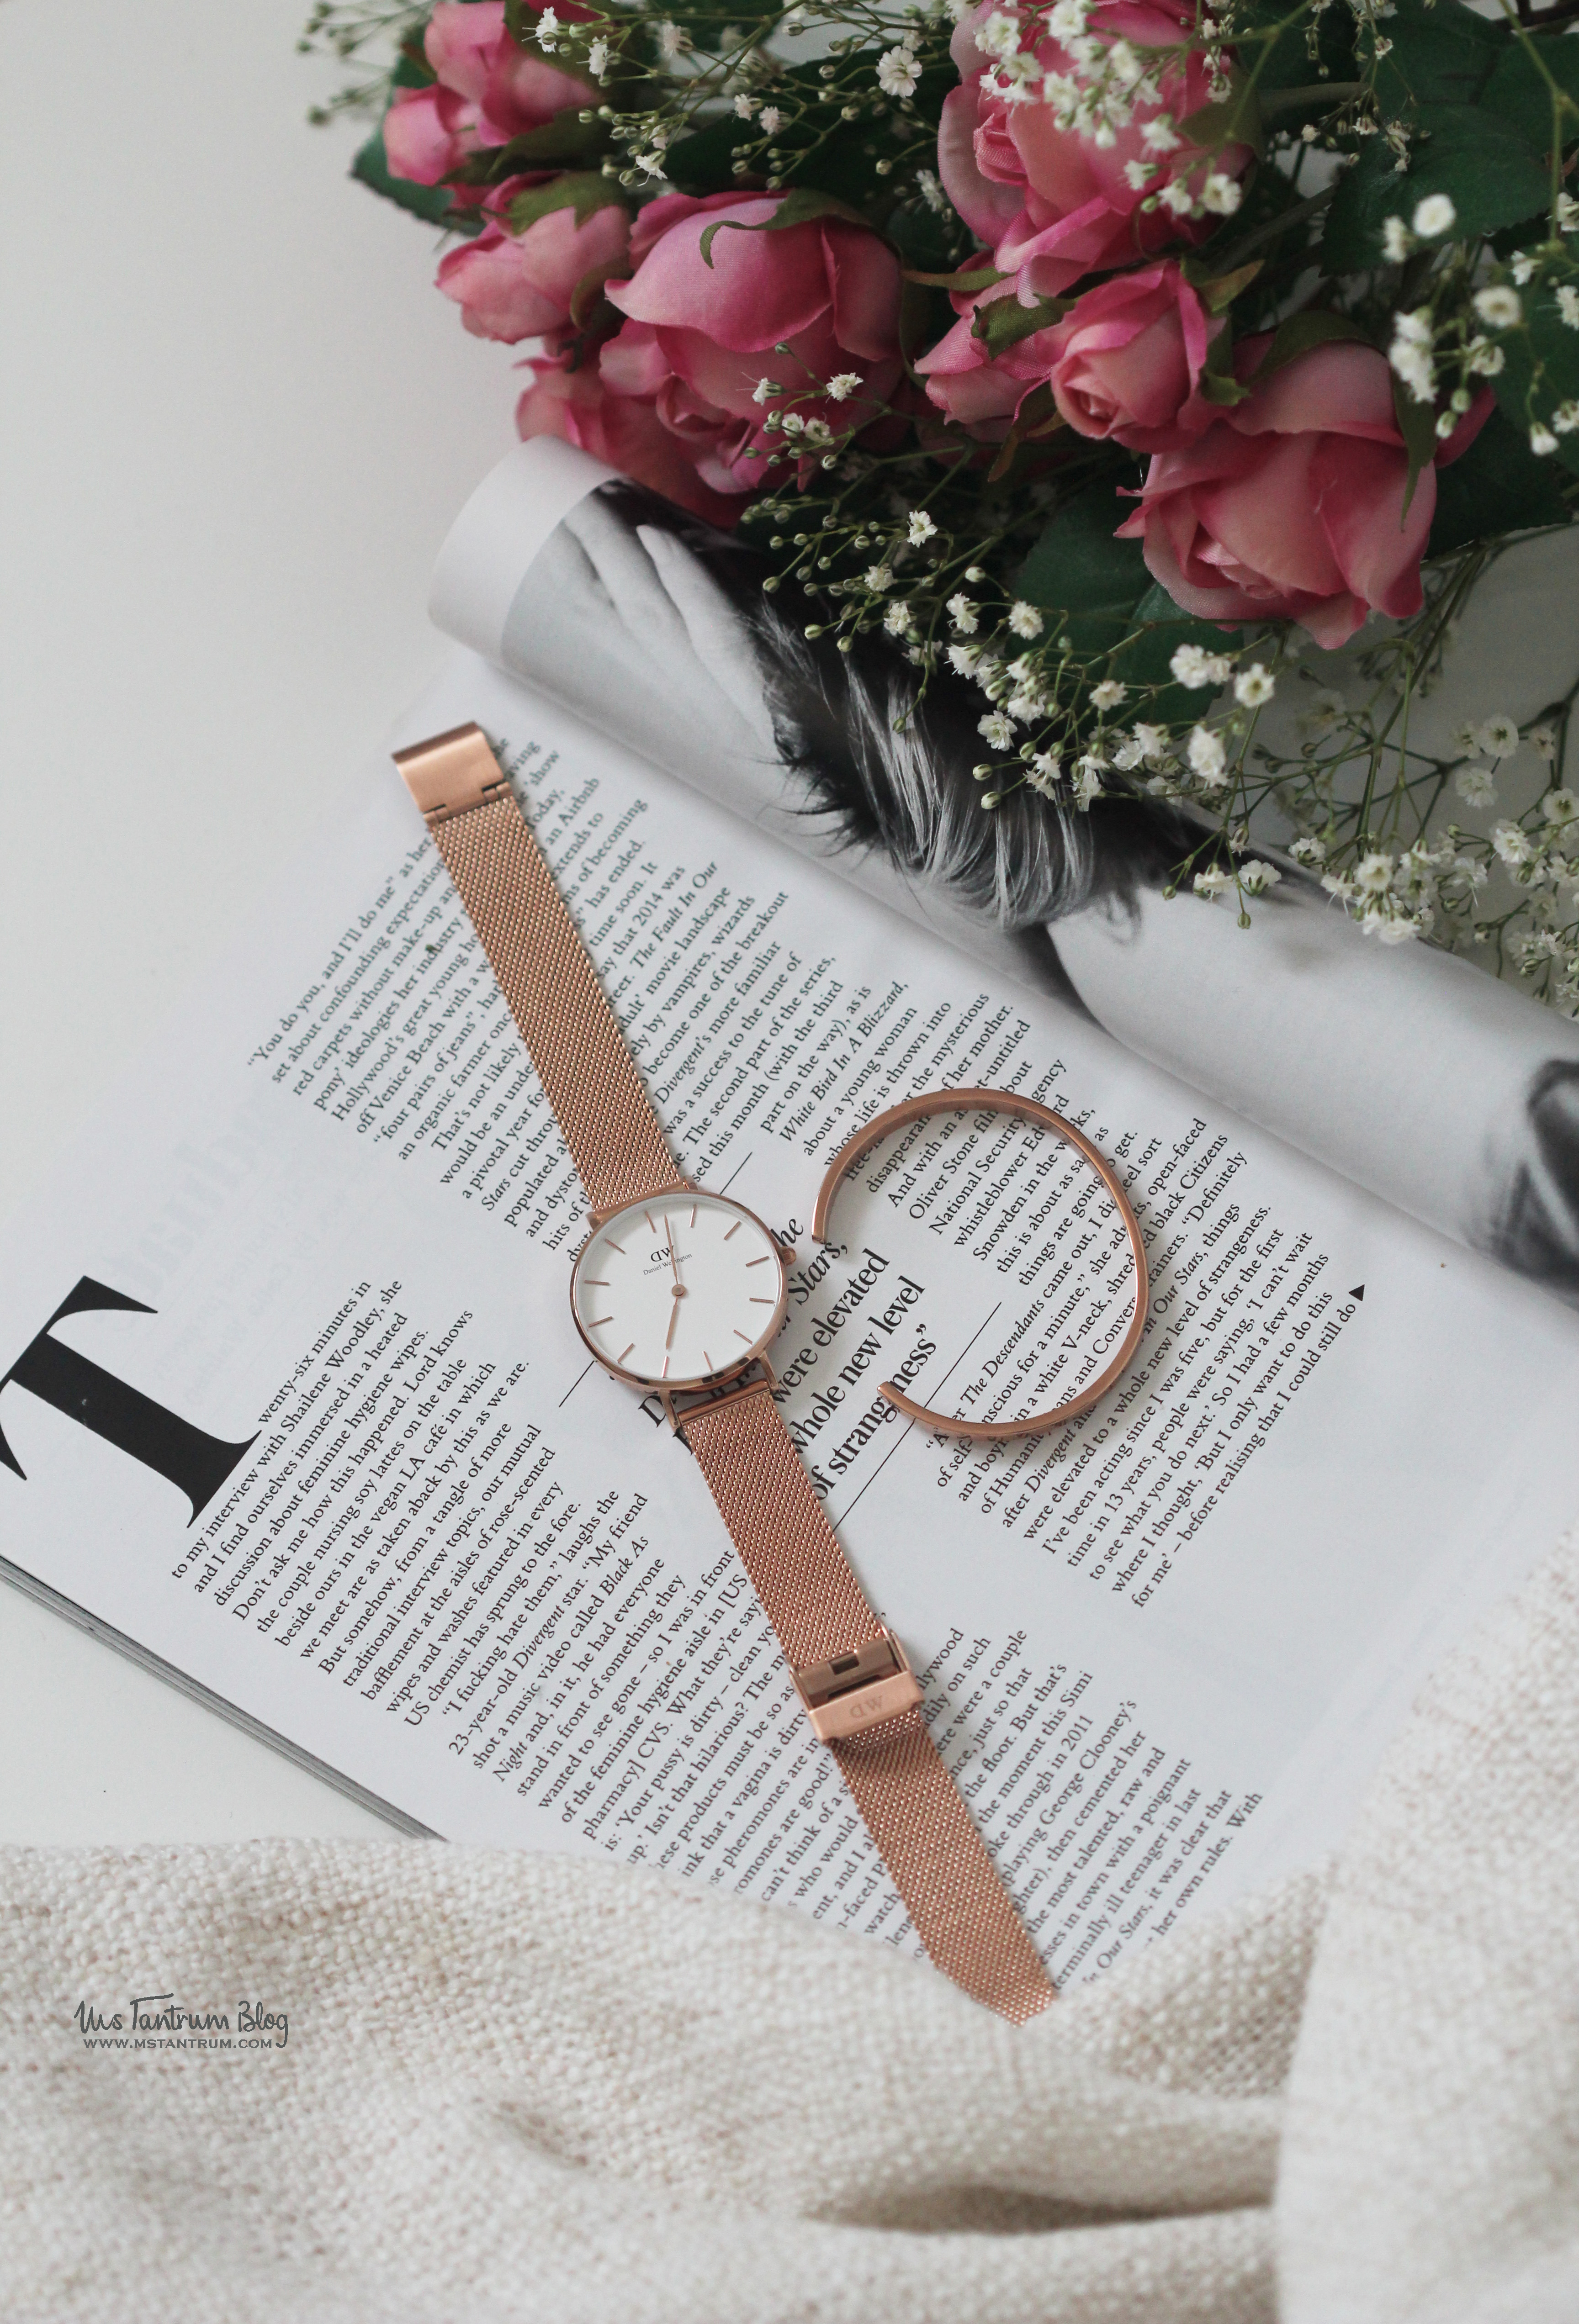 df5575448526 I have always admired Daniel Wellington watches. All their watches are so  chic